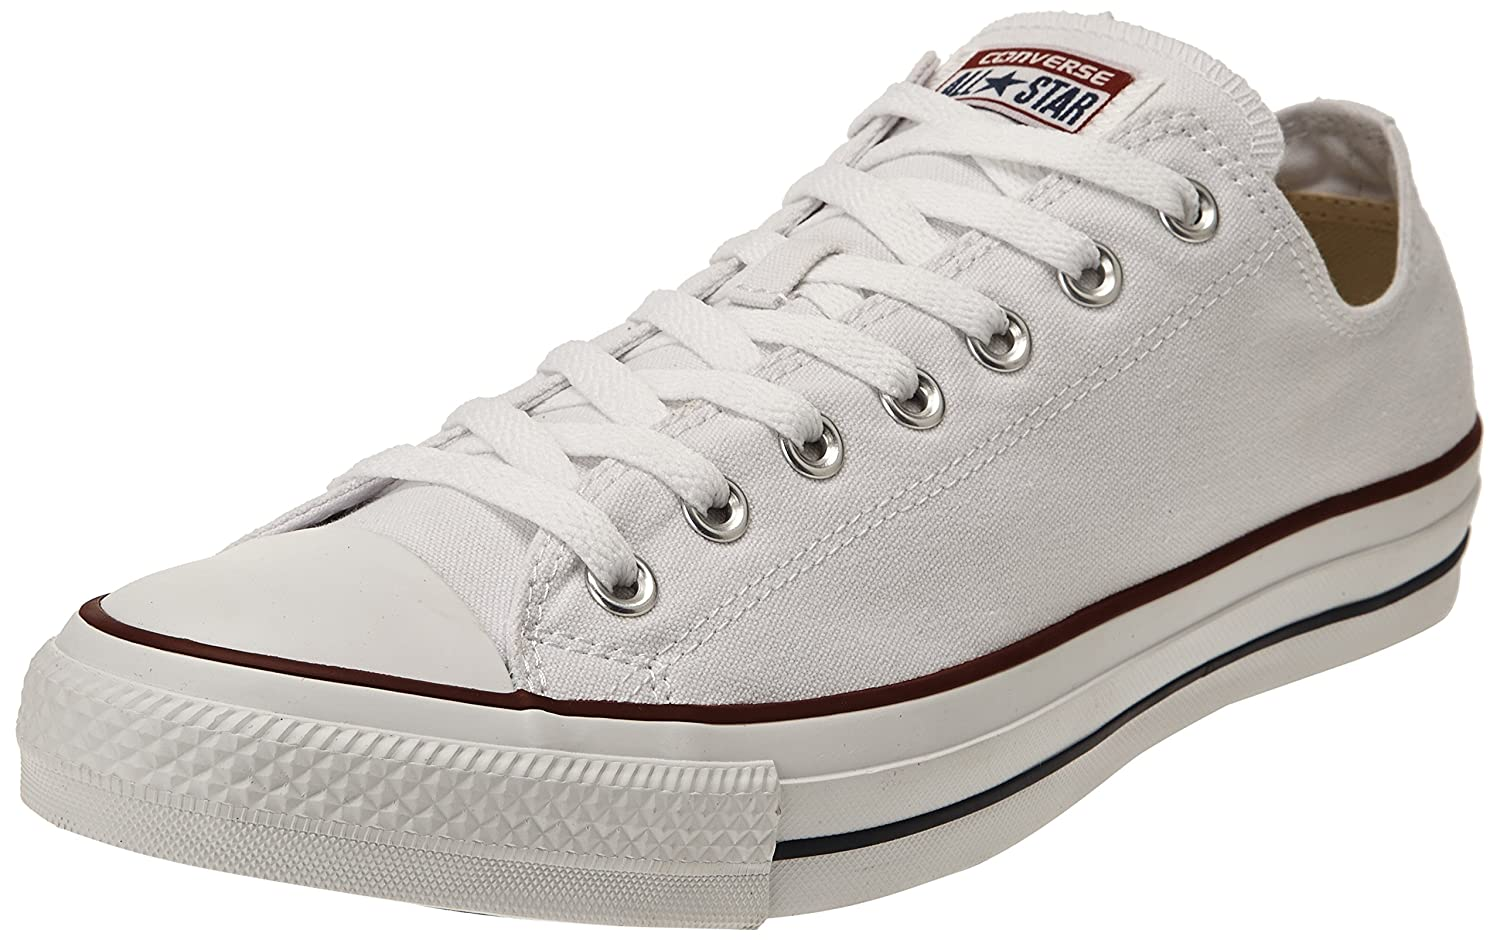 Converse Chuck Taylor All Star Converse Core, Mixte Baskets Mixte Star Adulte Blanc 67861d8 - fast-weightloss-diet.space